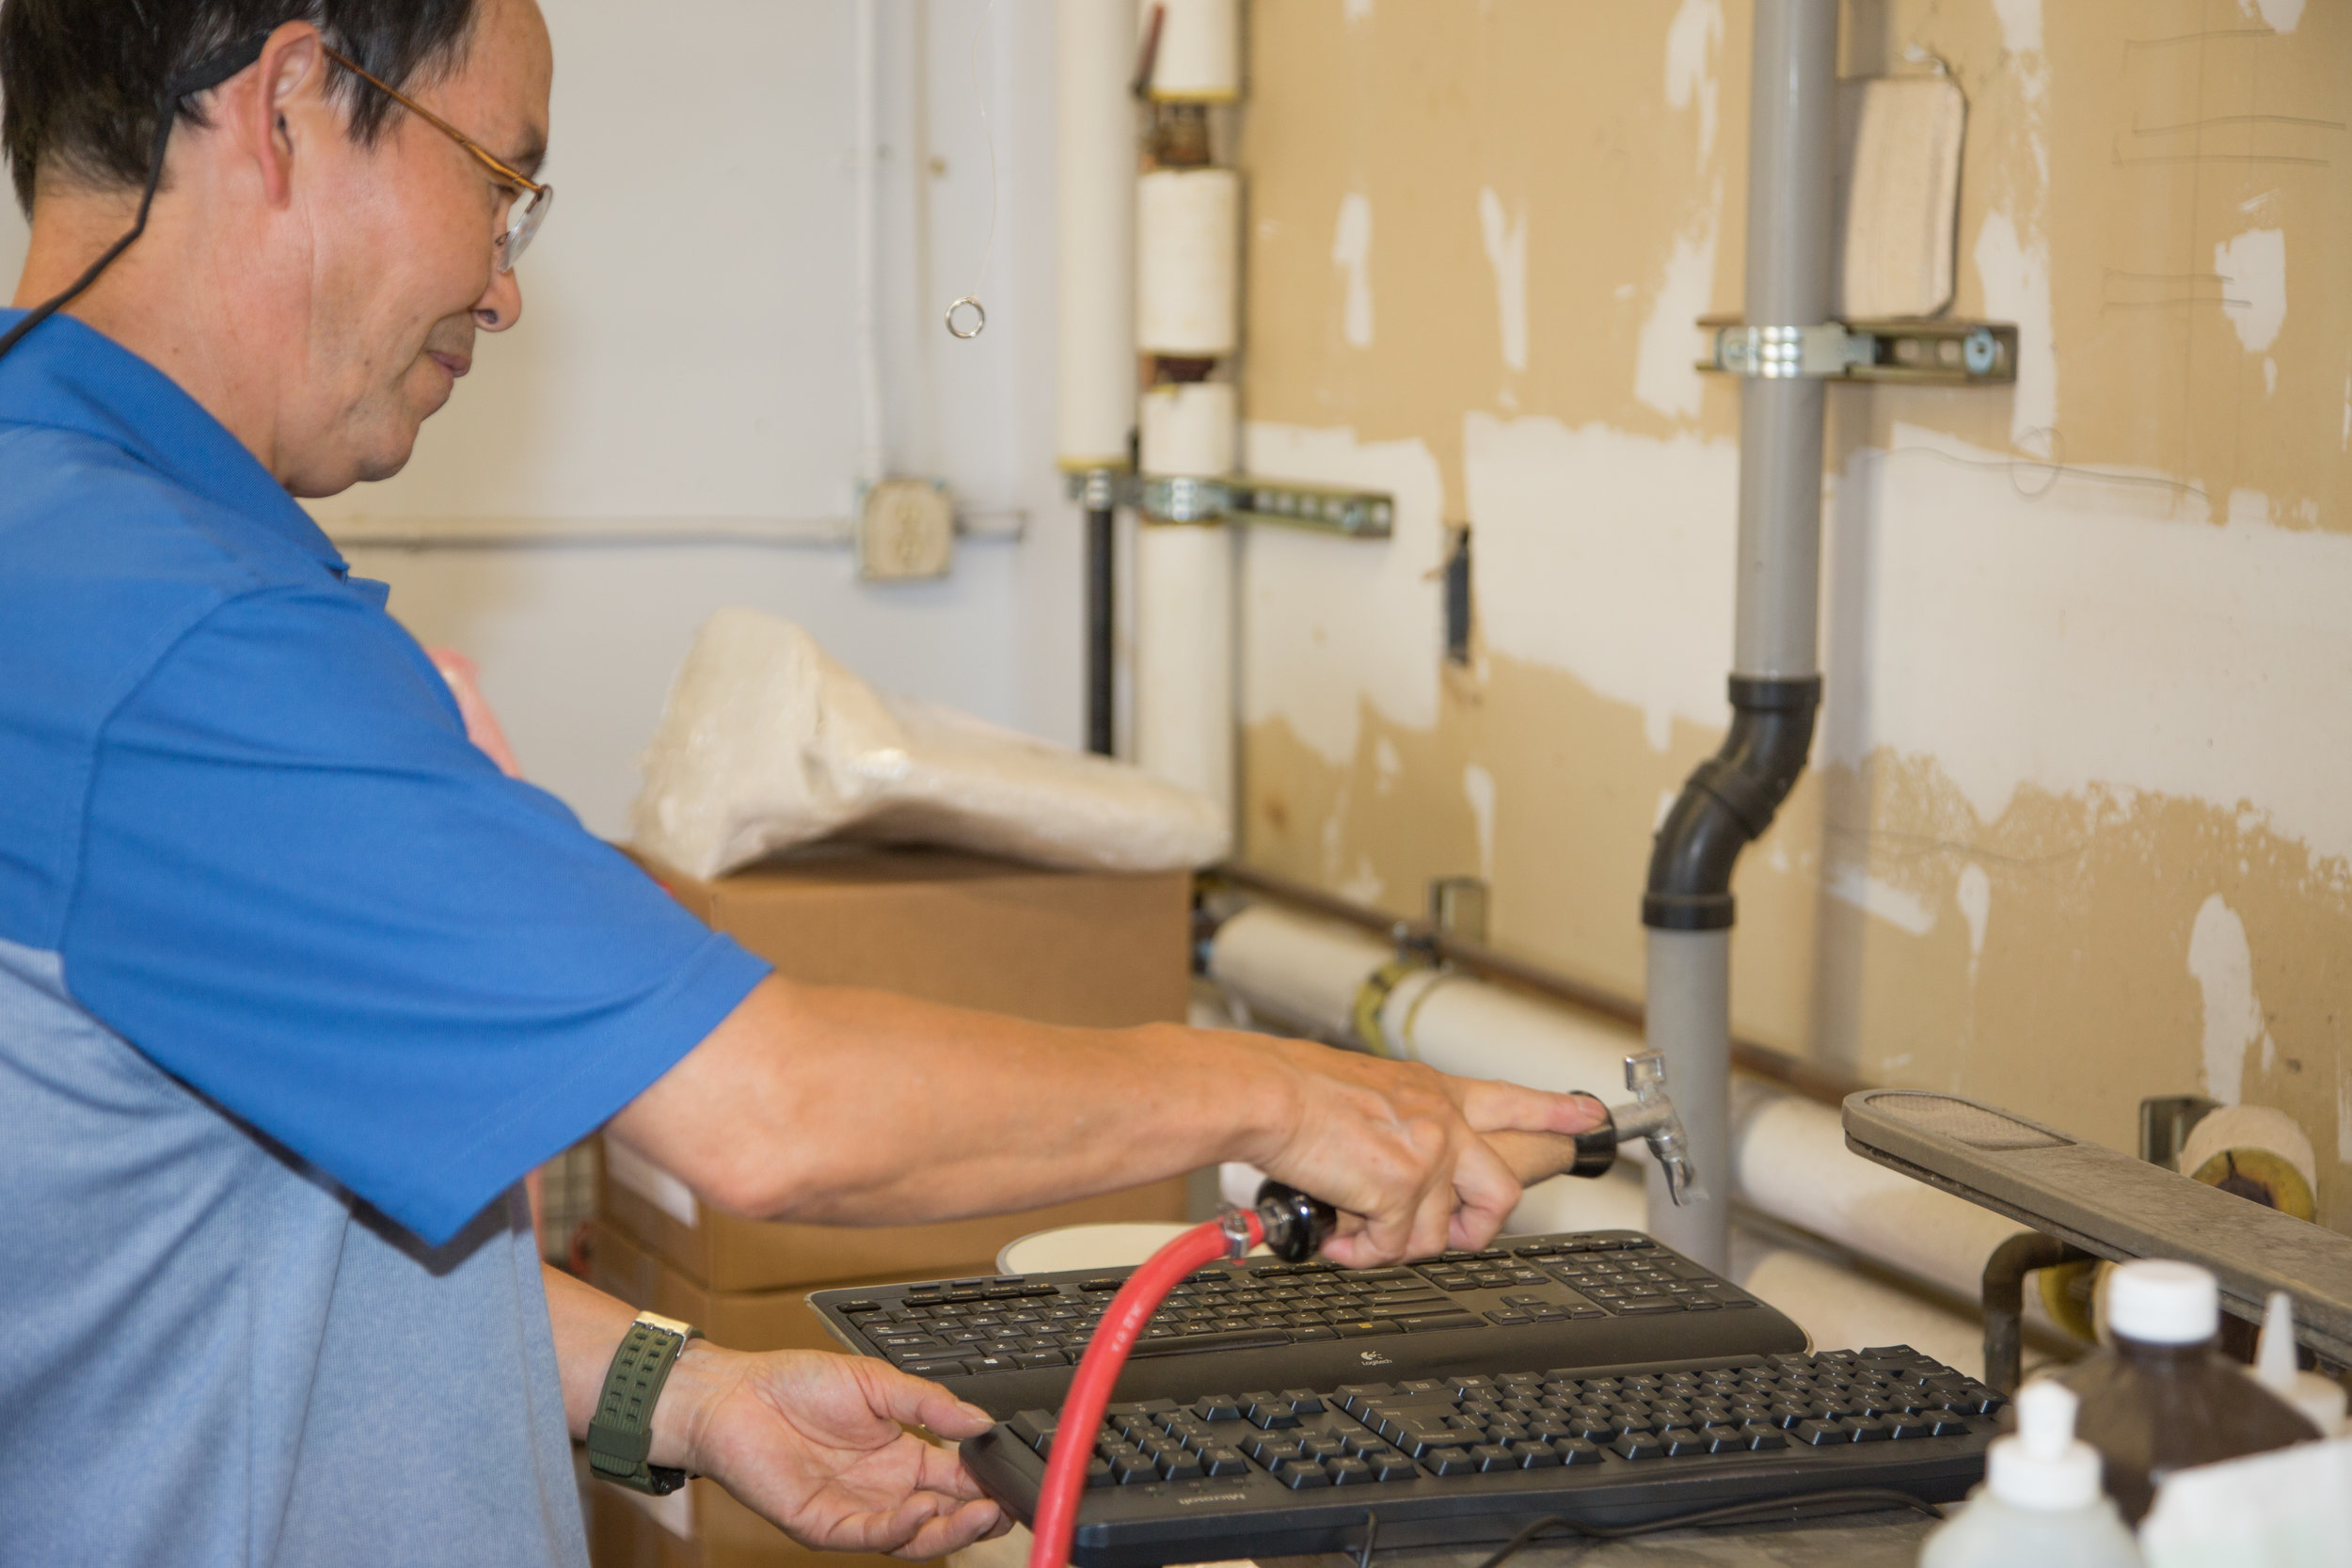 DLS provides high quality   Textile and Electronics Restoration Solutions    Let Us Help You